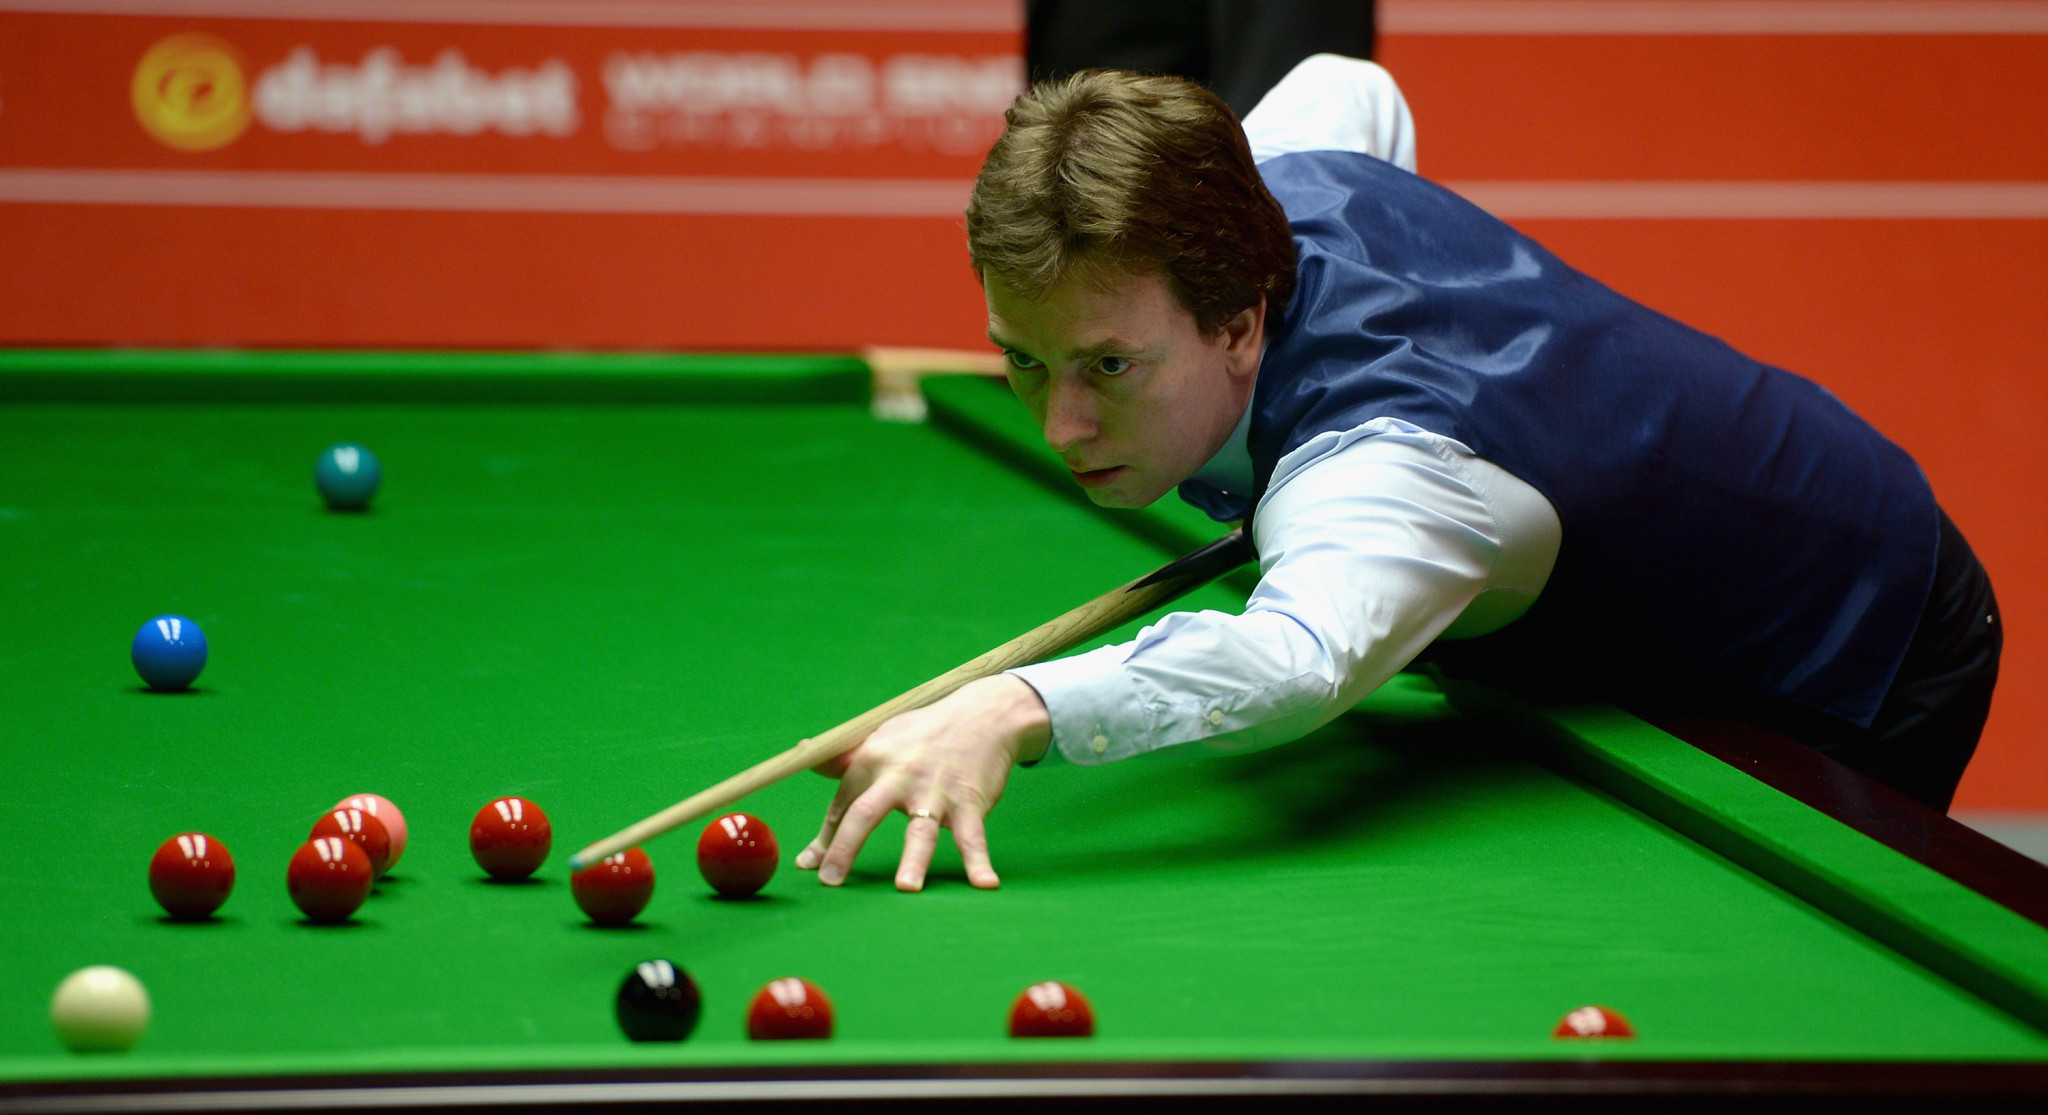 Ireland's Ken Doherty as been re-elected to the WPBSA board of directors as a player director, a role he has held since 2012, the world governing body's Annual General Meeting in Glasgow ©Getty Images